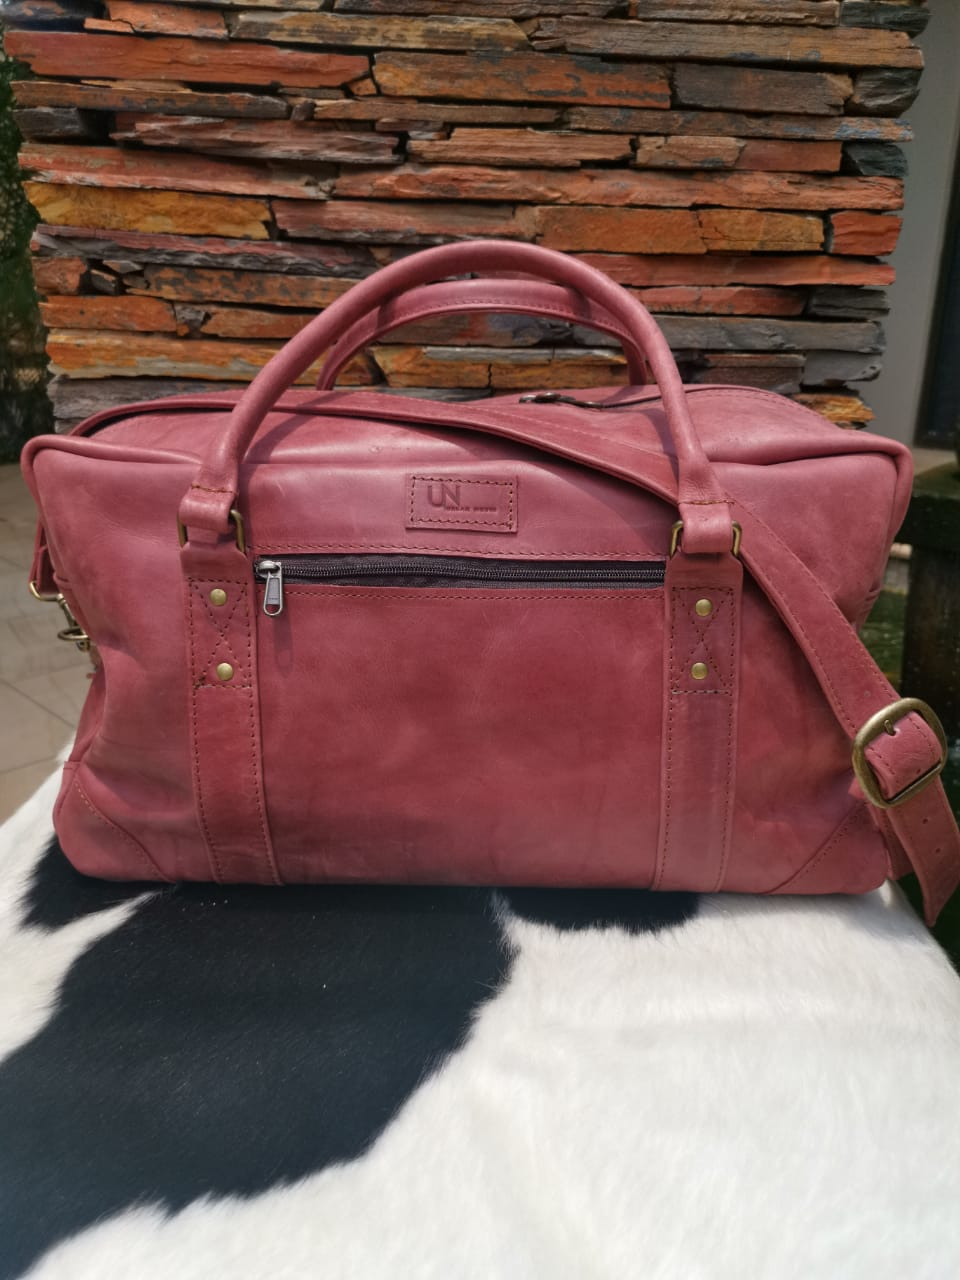 Executive Travel / Sport Bag - Cherry Red